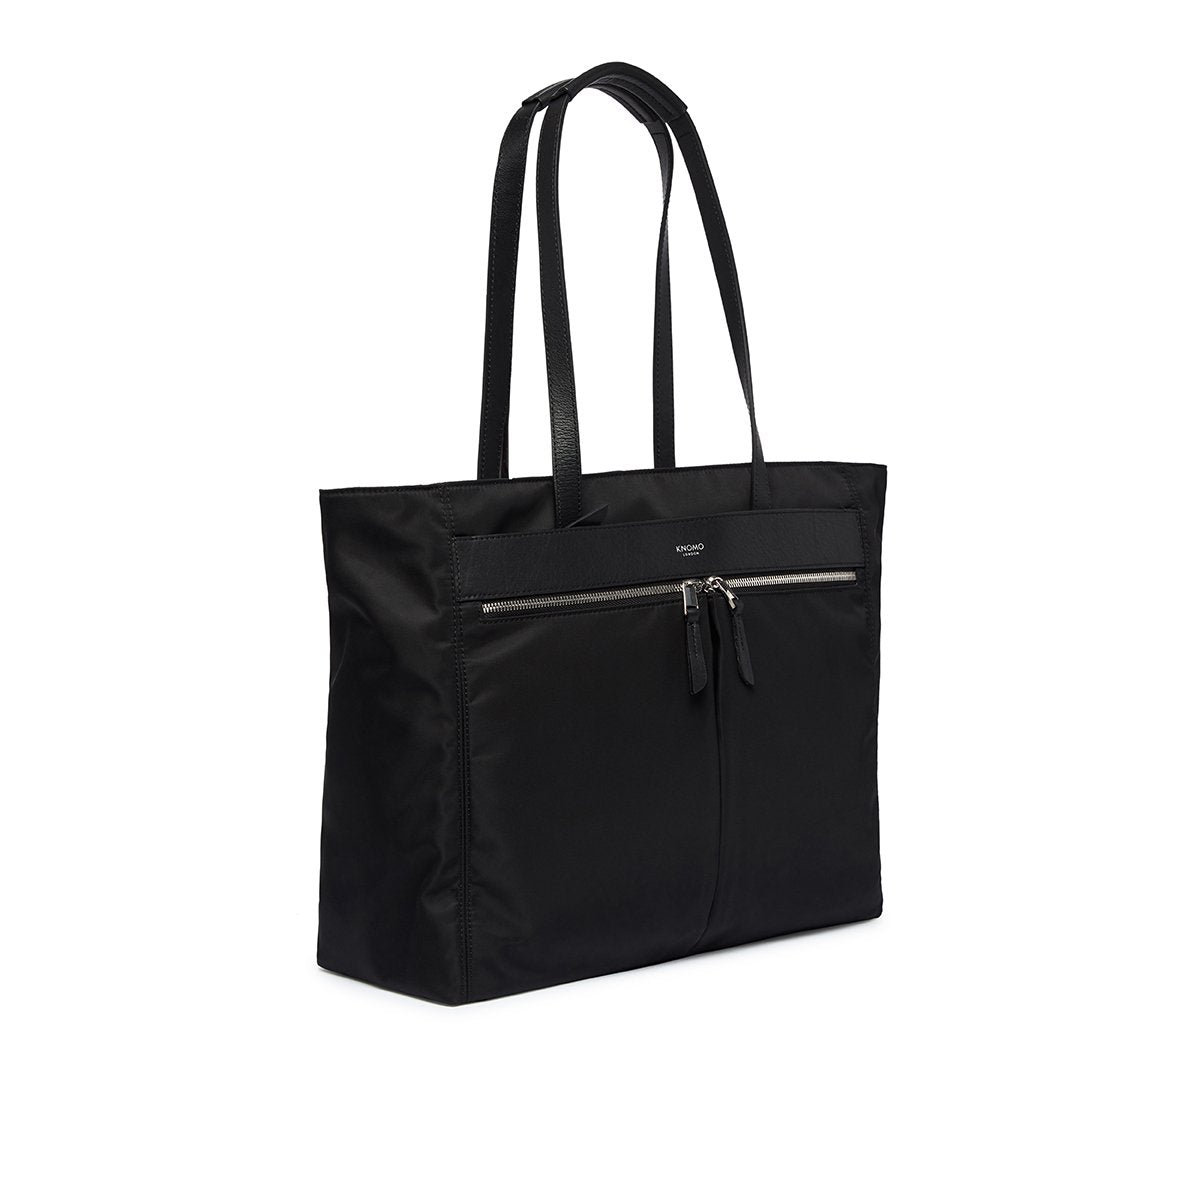 "Grosvenor Place Laptop Tote Bag - 15"" -  